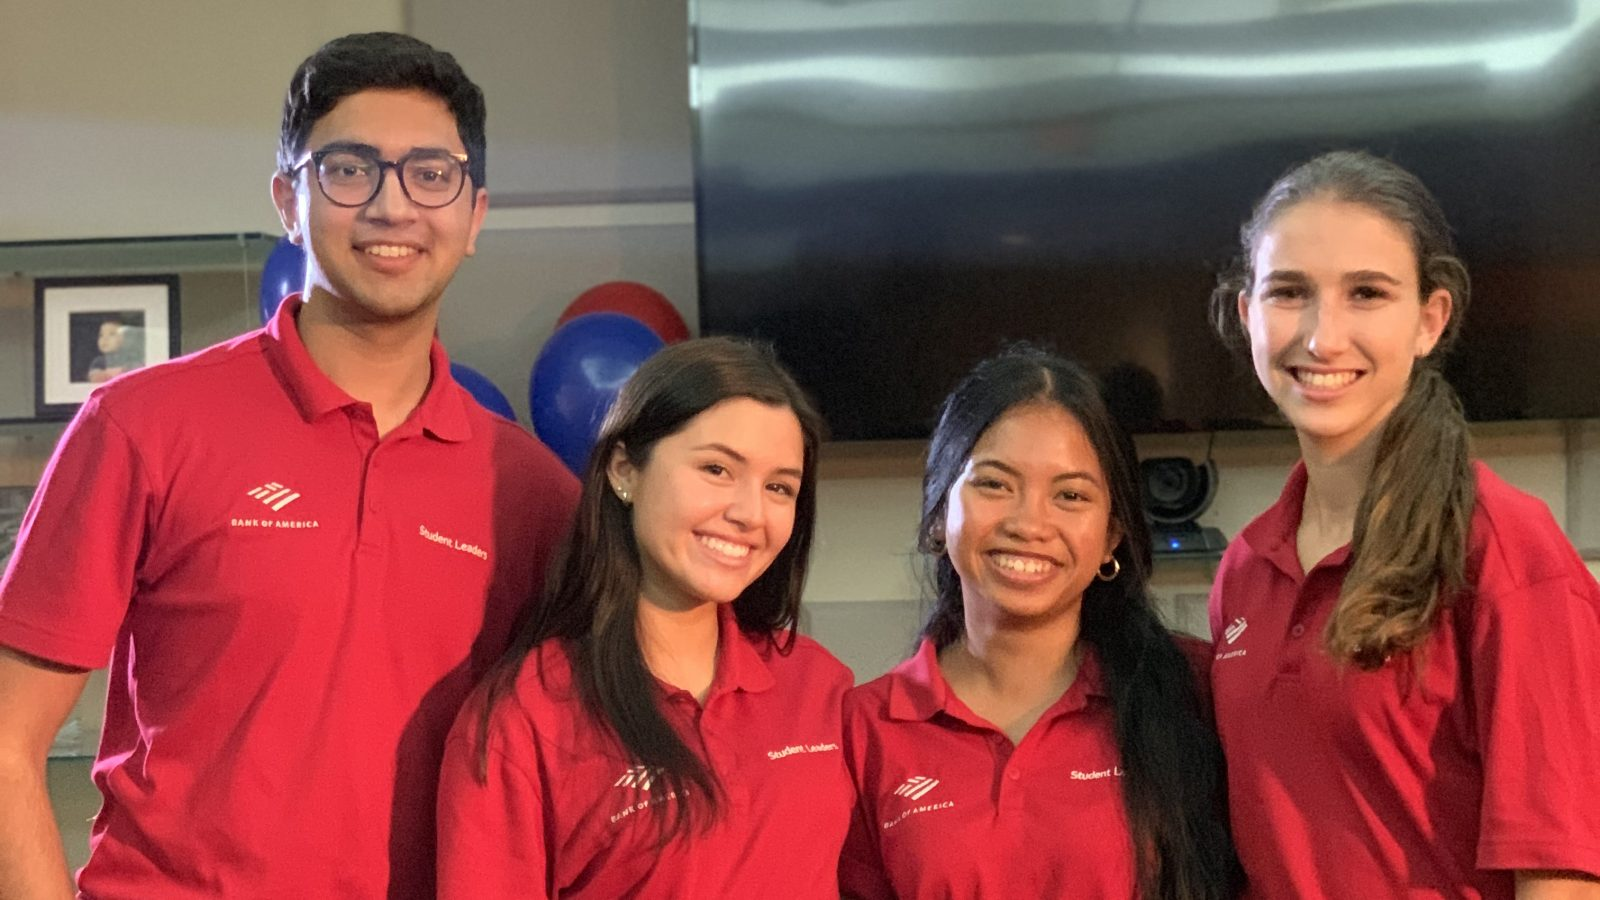 BANK OF AMERICA STUDENT LEADERS DEVELOP SKILLS AT YMCA